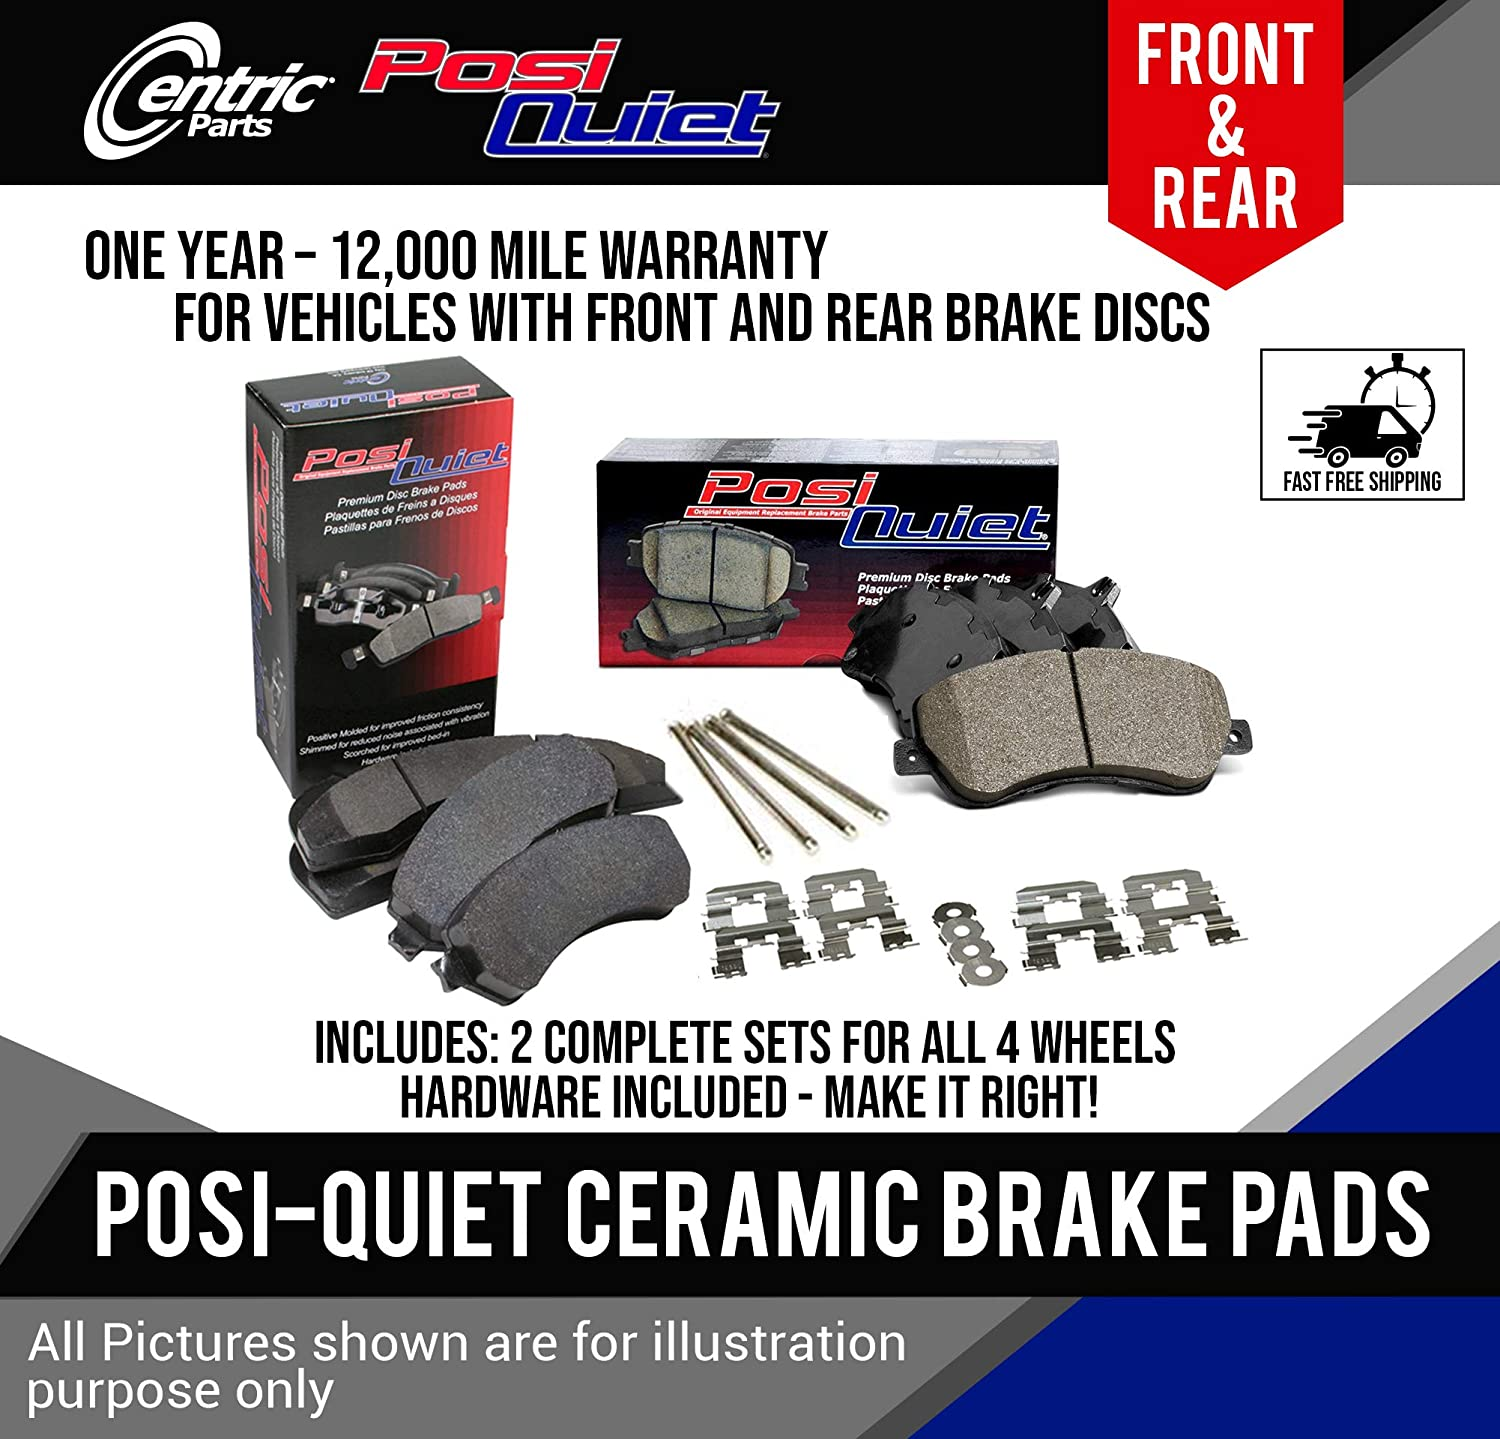 Centric FRONT and REAR Posi Quiet Ceramic Brake Pads Fits Subaru Forester, Legacy, WRX